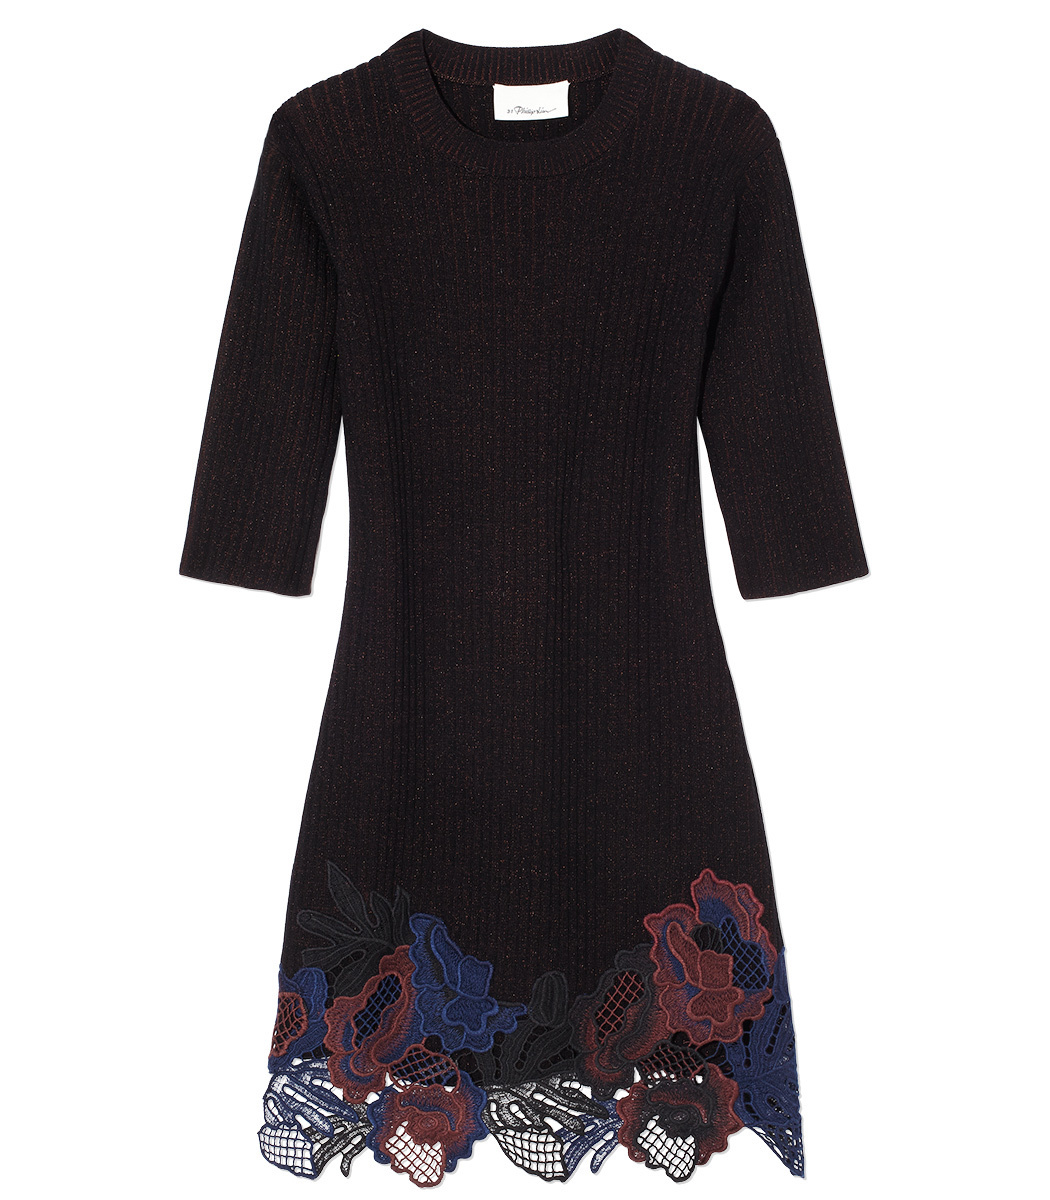 3.1 Phillip Lim  Burgundy Knit & Lace Dress